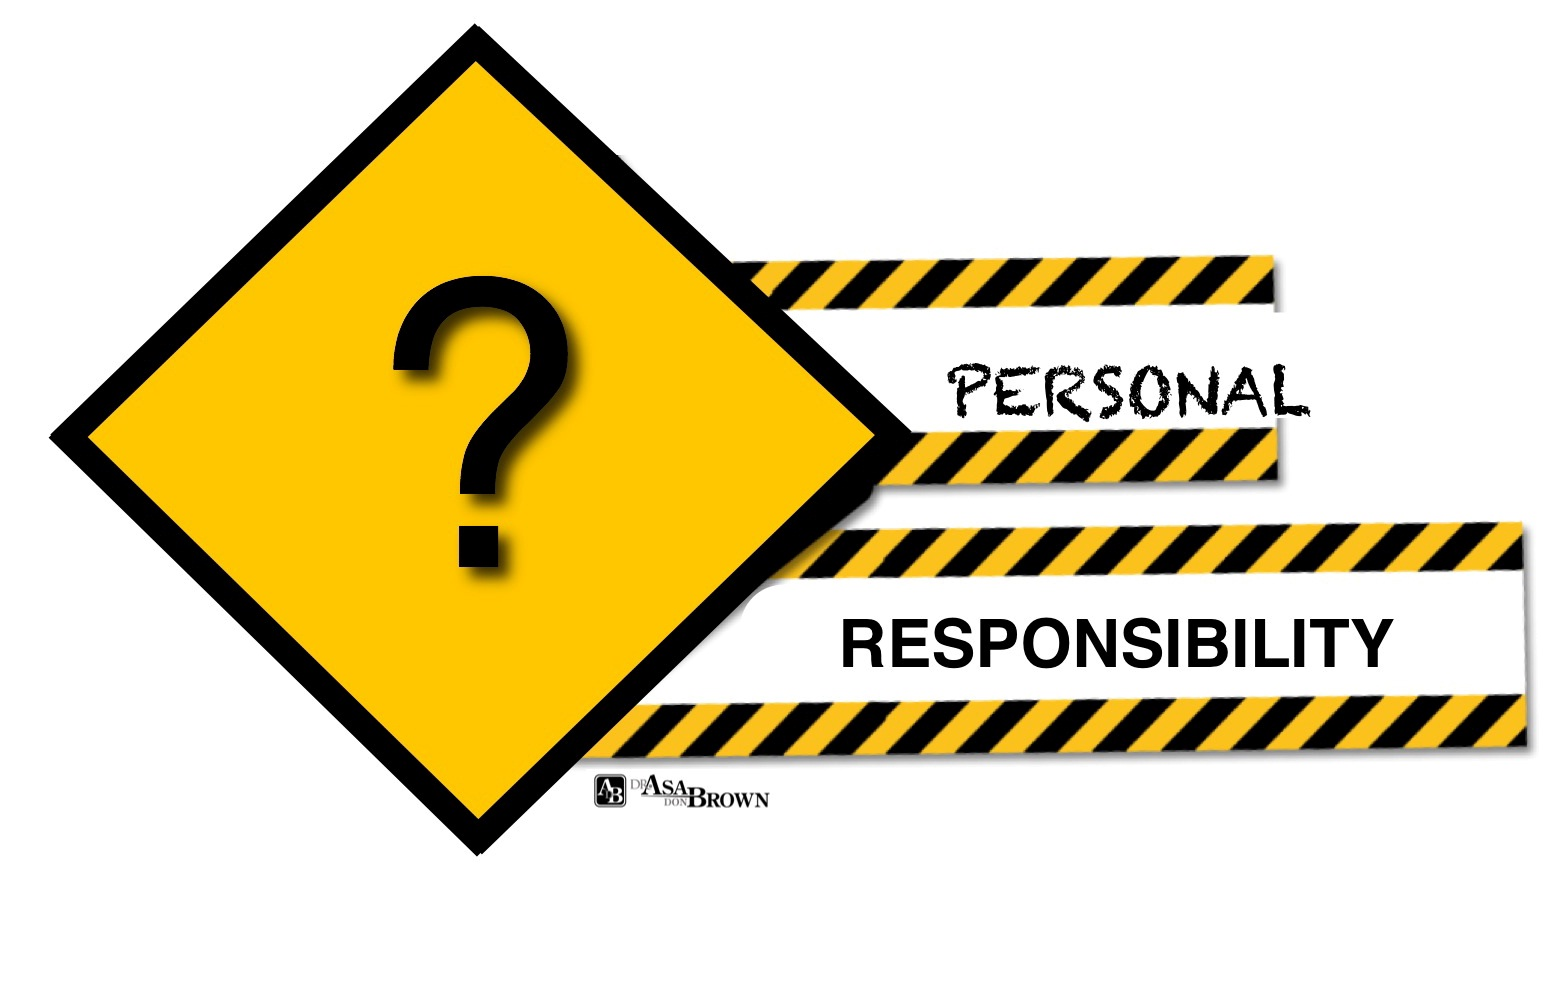 my personal responsibility In the context of responsibility to ourselves, personal responsibility means, in large part, establishing logical goals, identifying what commitments are necessary to achieve those goals, and then maintaining our commitment to those goals thereafter.